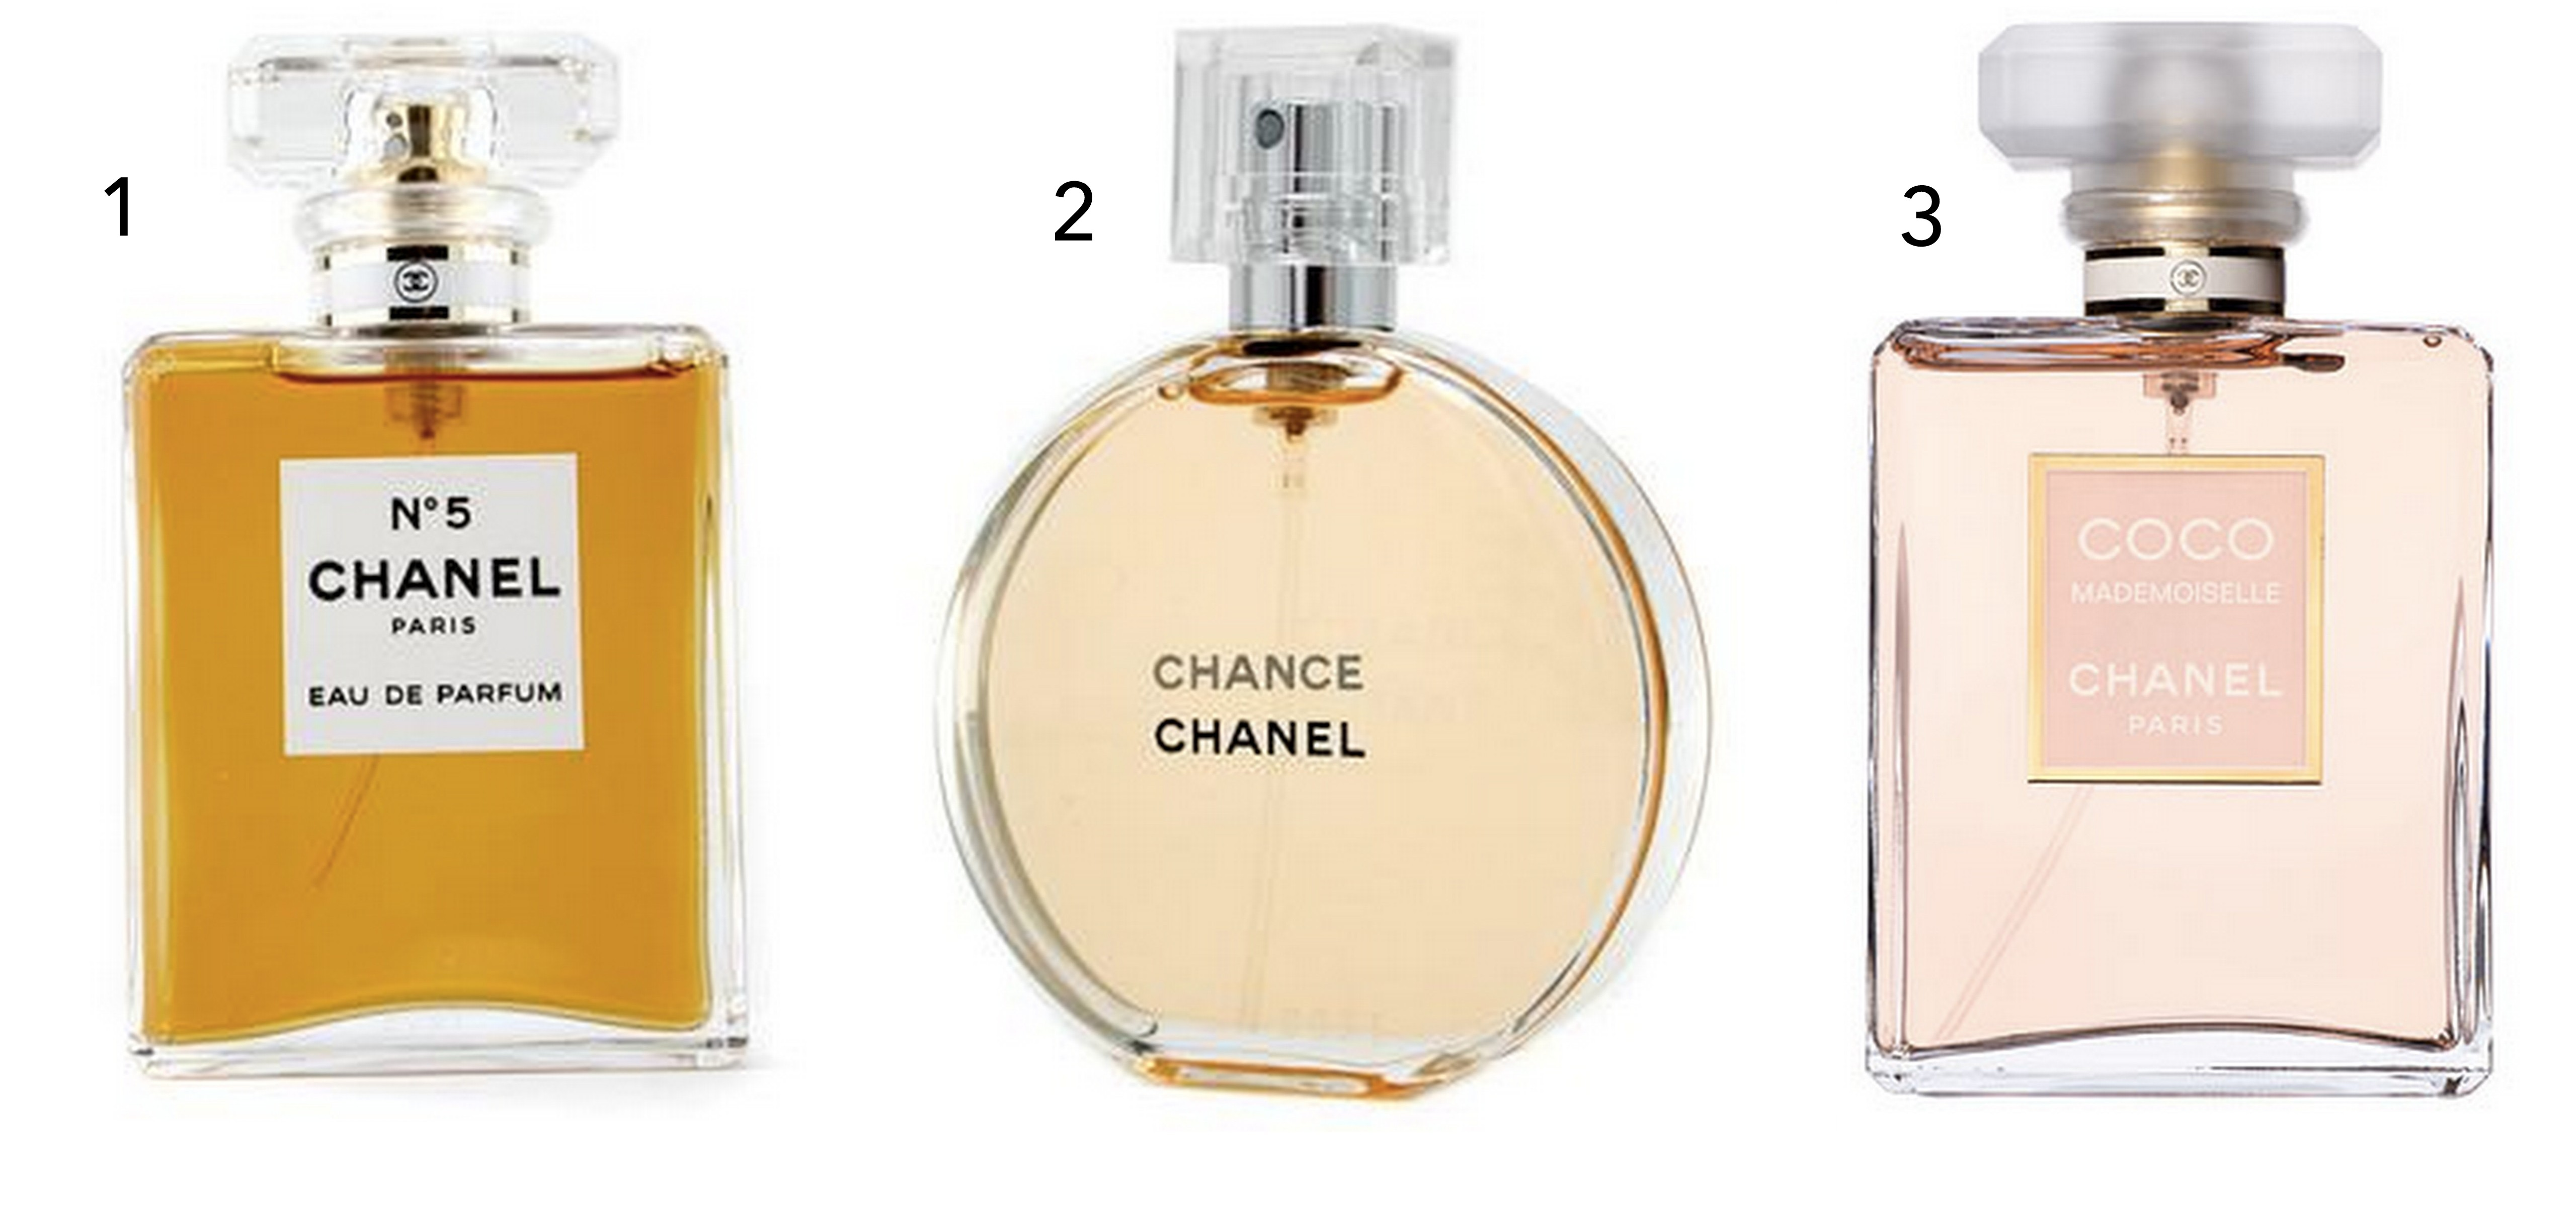 chanel duft